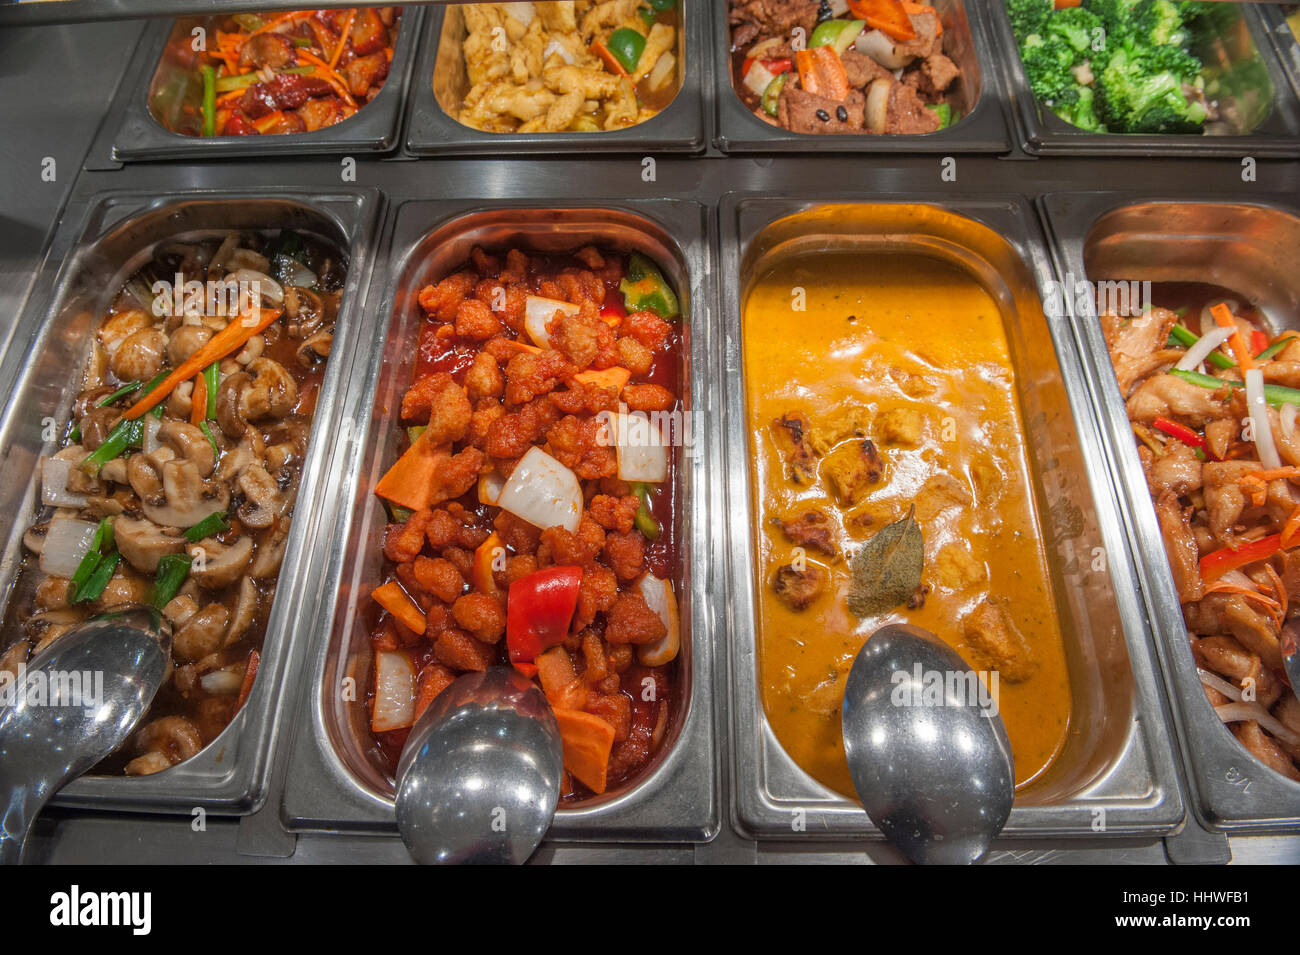 A Selection Of Chinese Restaurant Food Dishes Uk Stock Photo Alamy